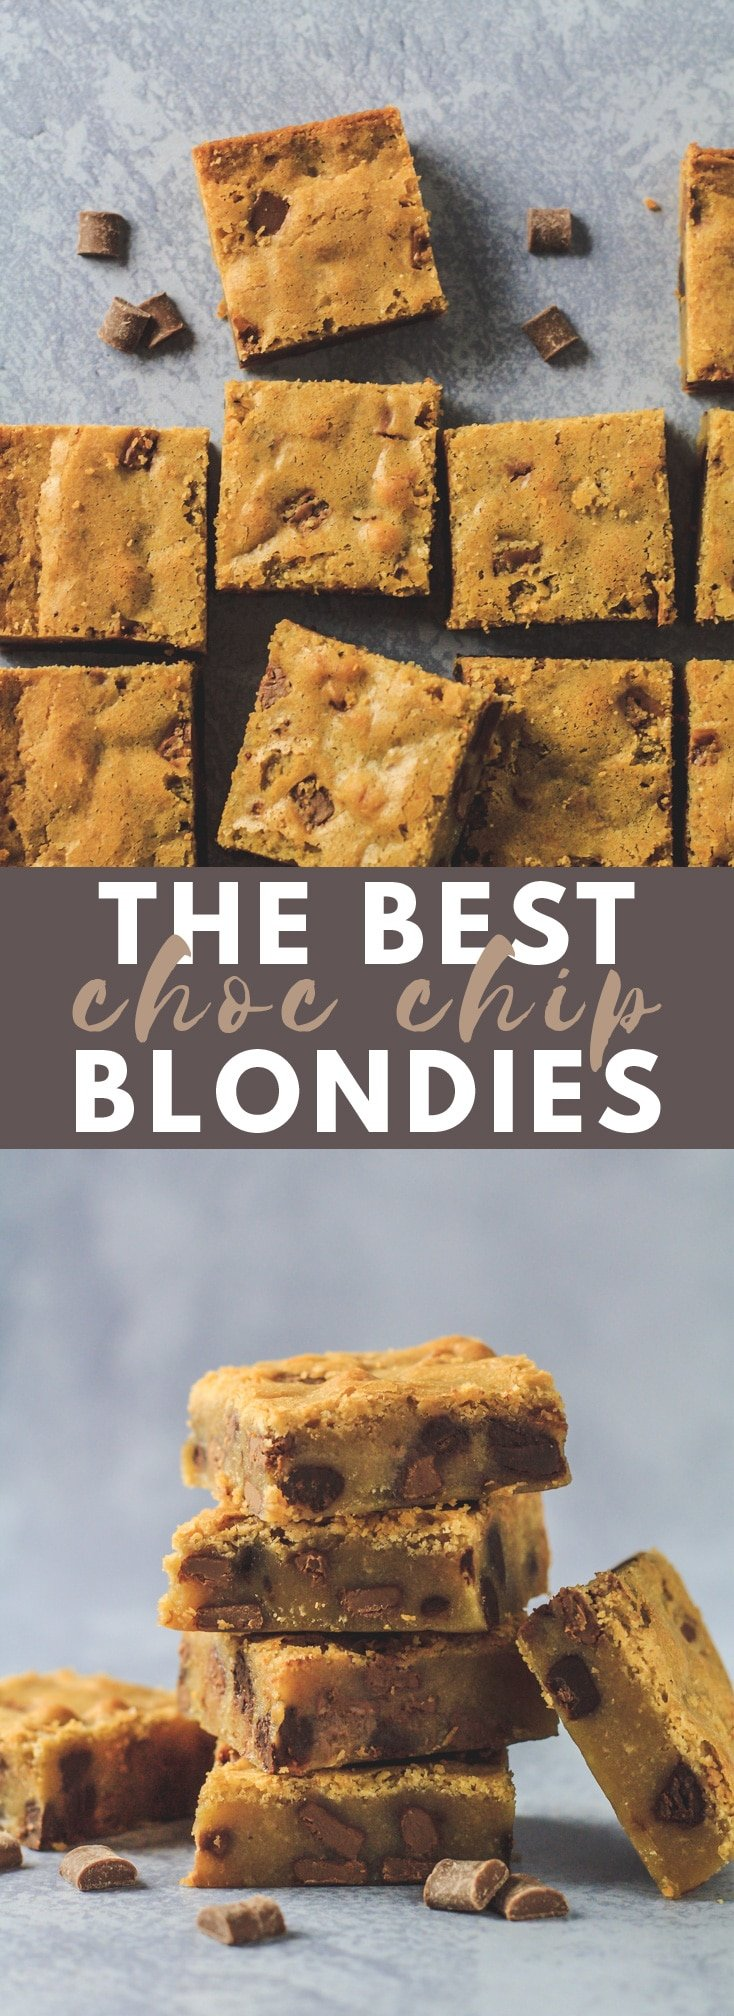 The BEST Chocolate Chip Blondies - These deliciously thick and chewy blondies are stuffed full of chocolate chips, big on flavour, and have that irresistible crinkly top!